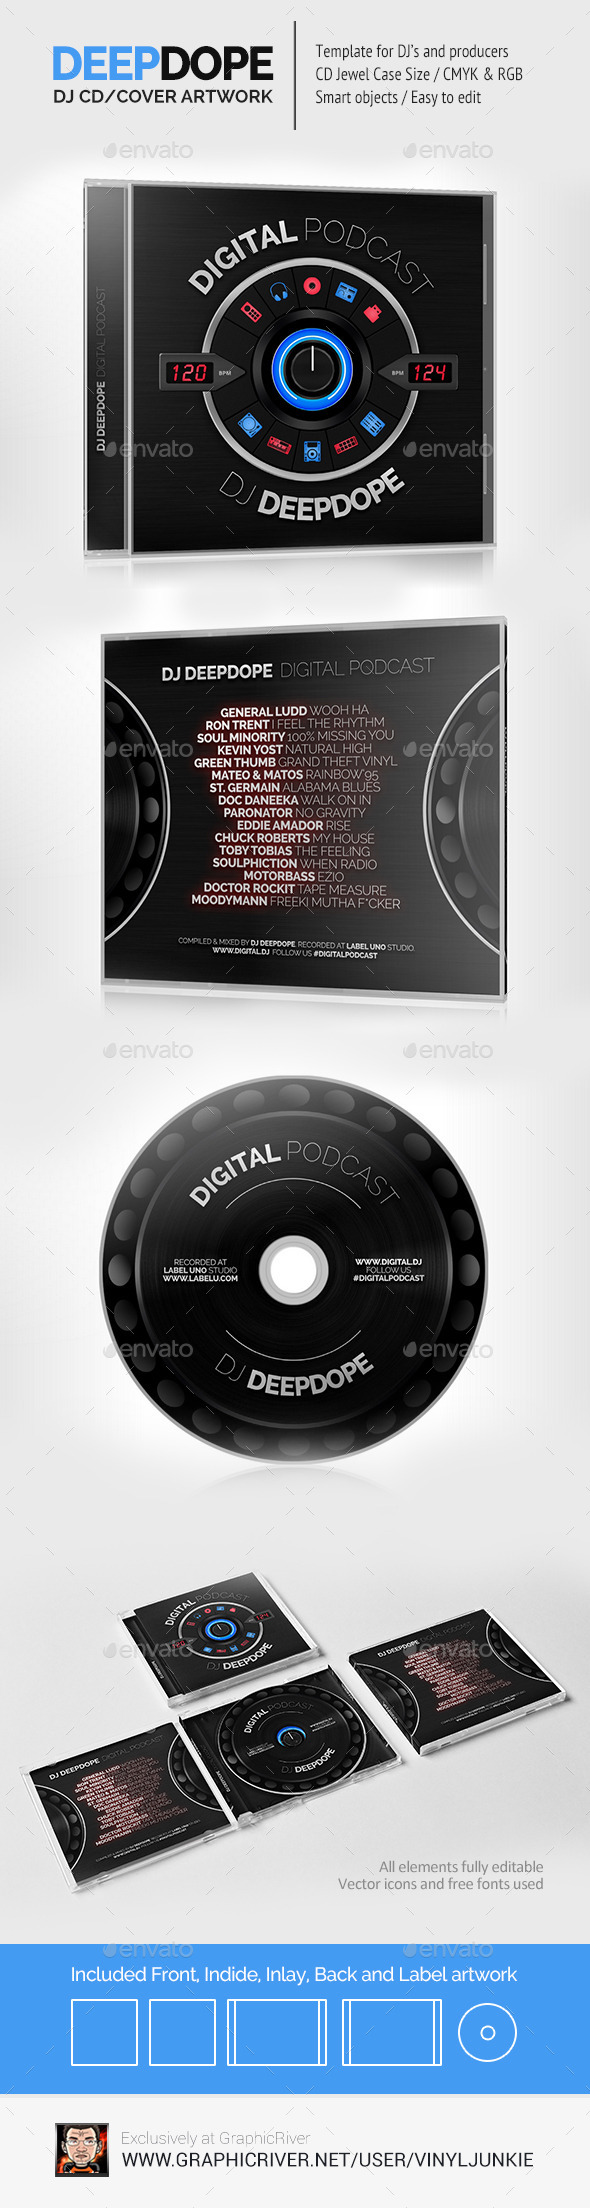 DeepDope - DJ Mix CD Cover Artwork PSD - CD & DVD Artwork Print Templates